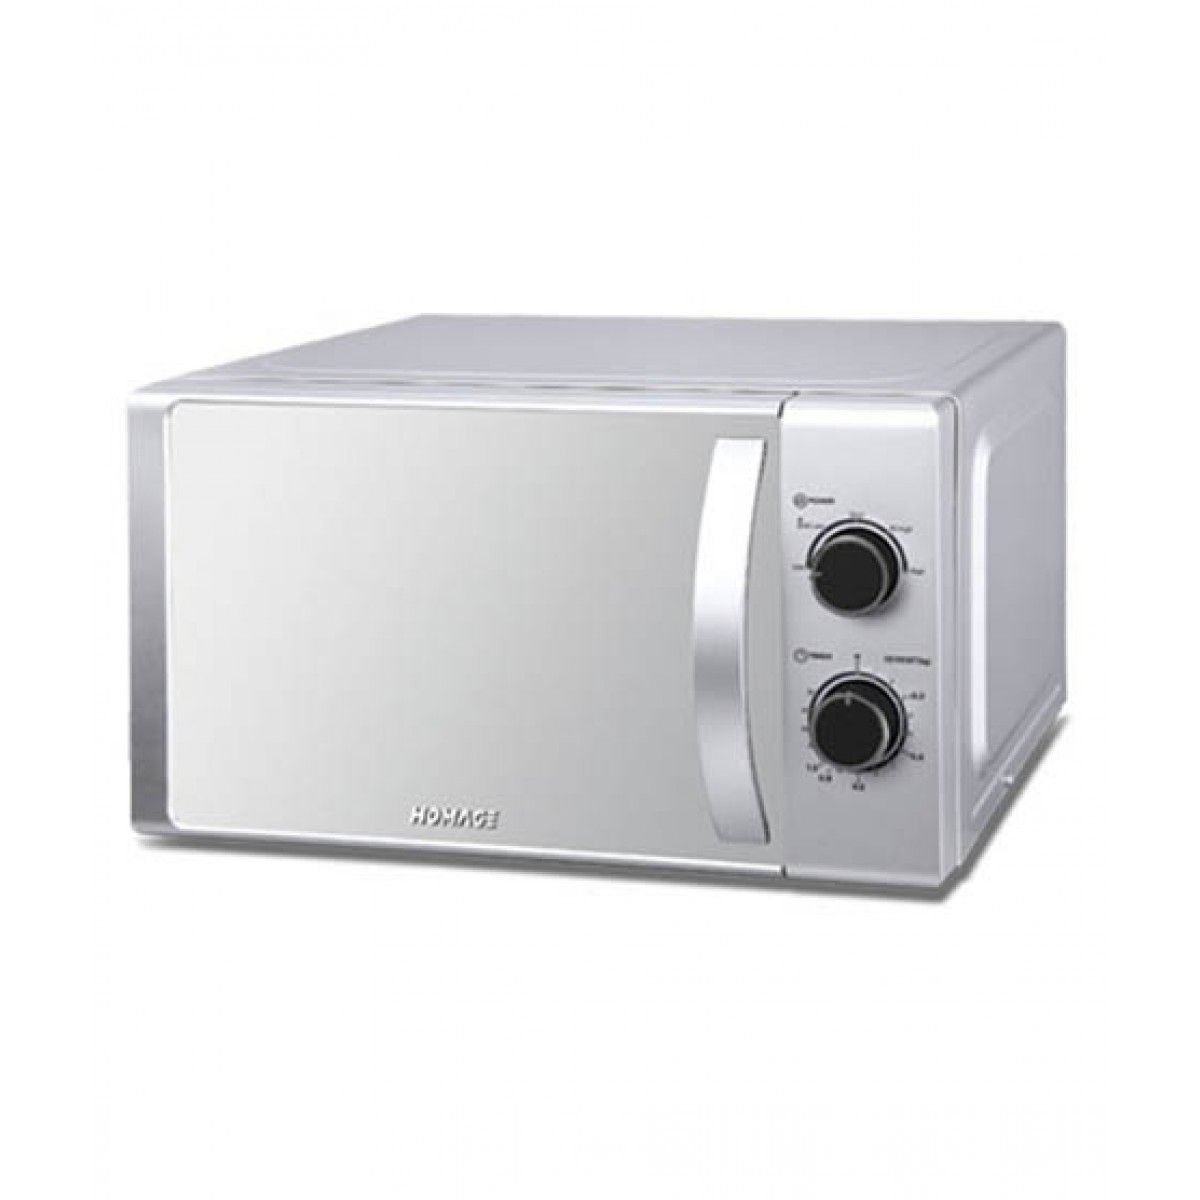 Homage HMSO-2010S 20ltr Microwave Oven